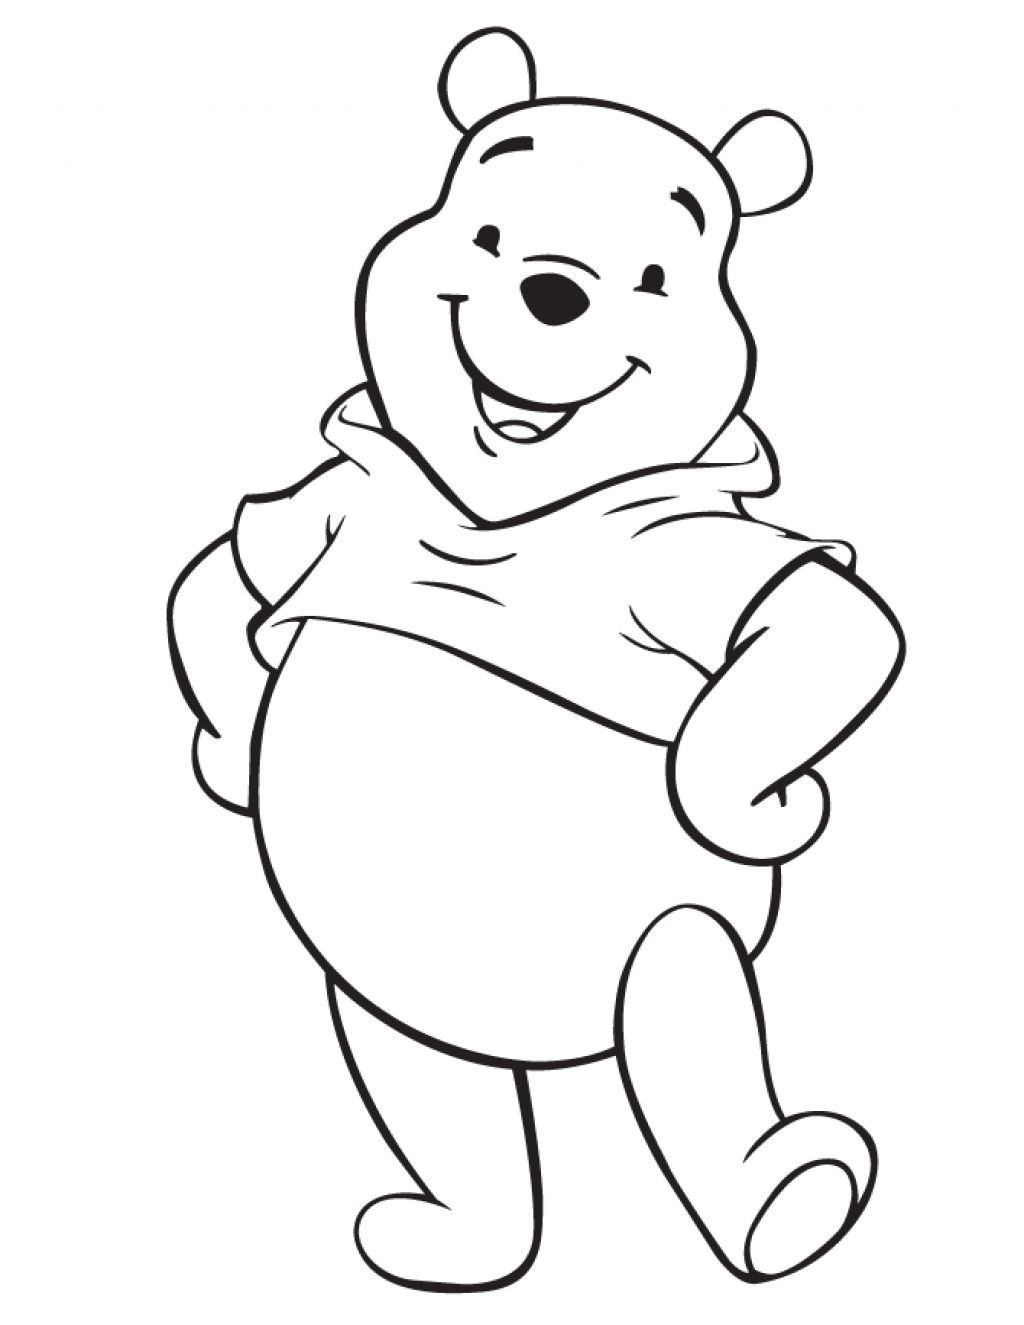 Disney Characters Coloring Pages Easy Baby Disney Cartoon Characters - Free Printable Coloring Pages Of Disney Characters